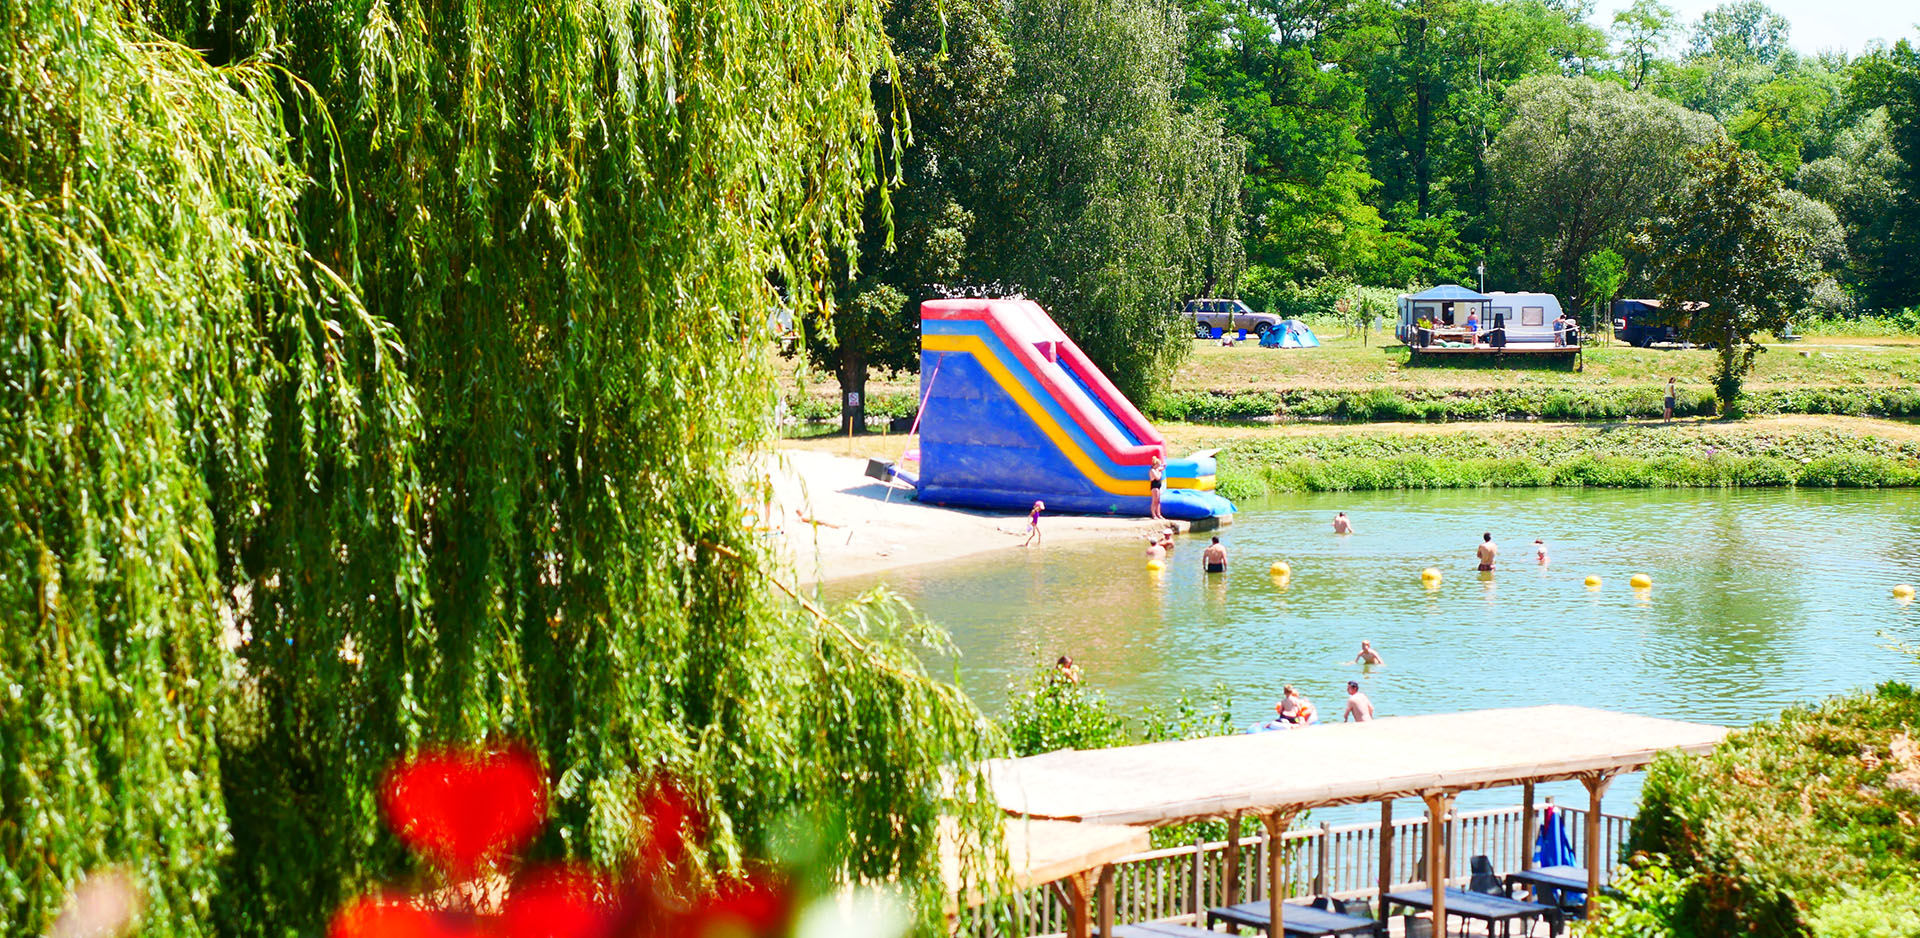 Natural summing lake with water slides and inflatable games at the campsite Les Castors in the Haut-Rhin